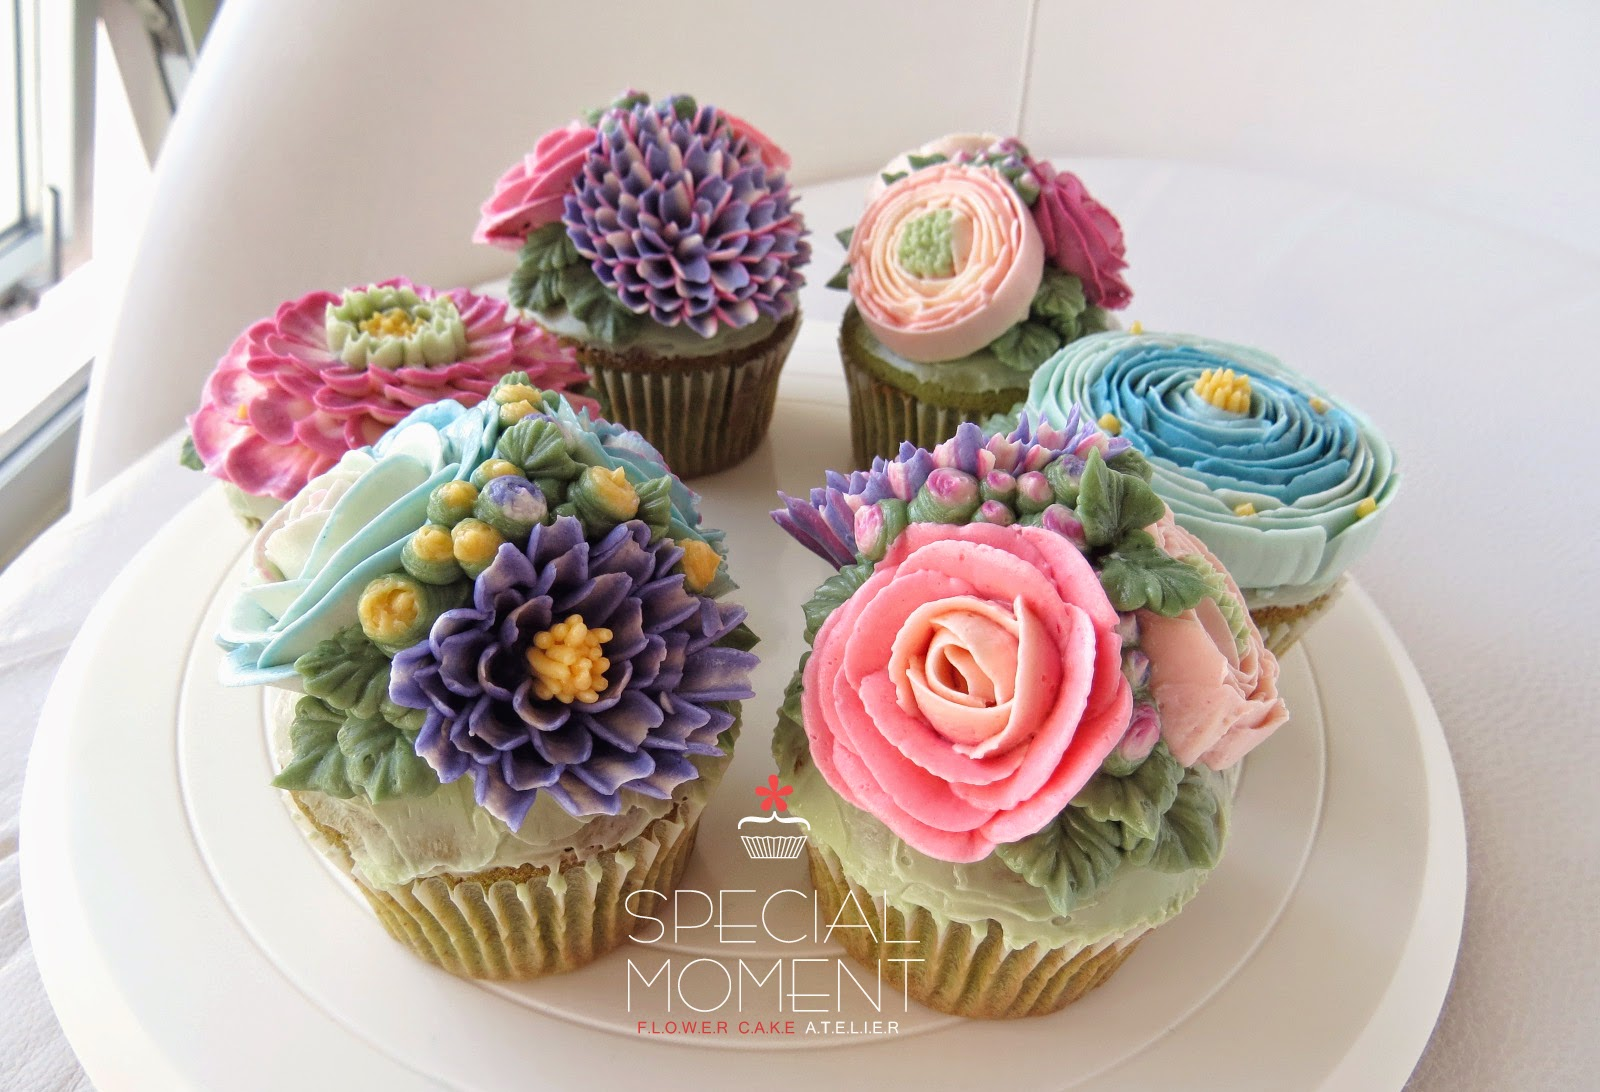 Special Moment Greentea Chocolate Buttercream Flower Cupcakes